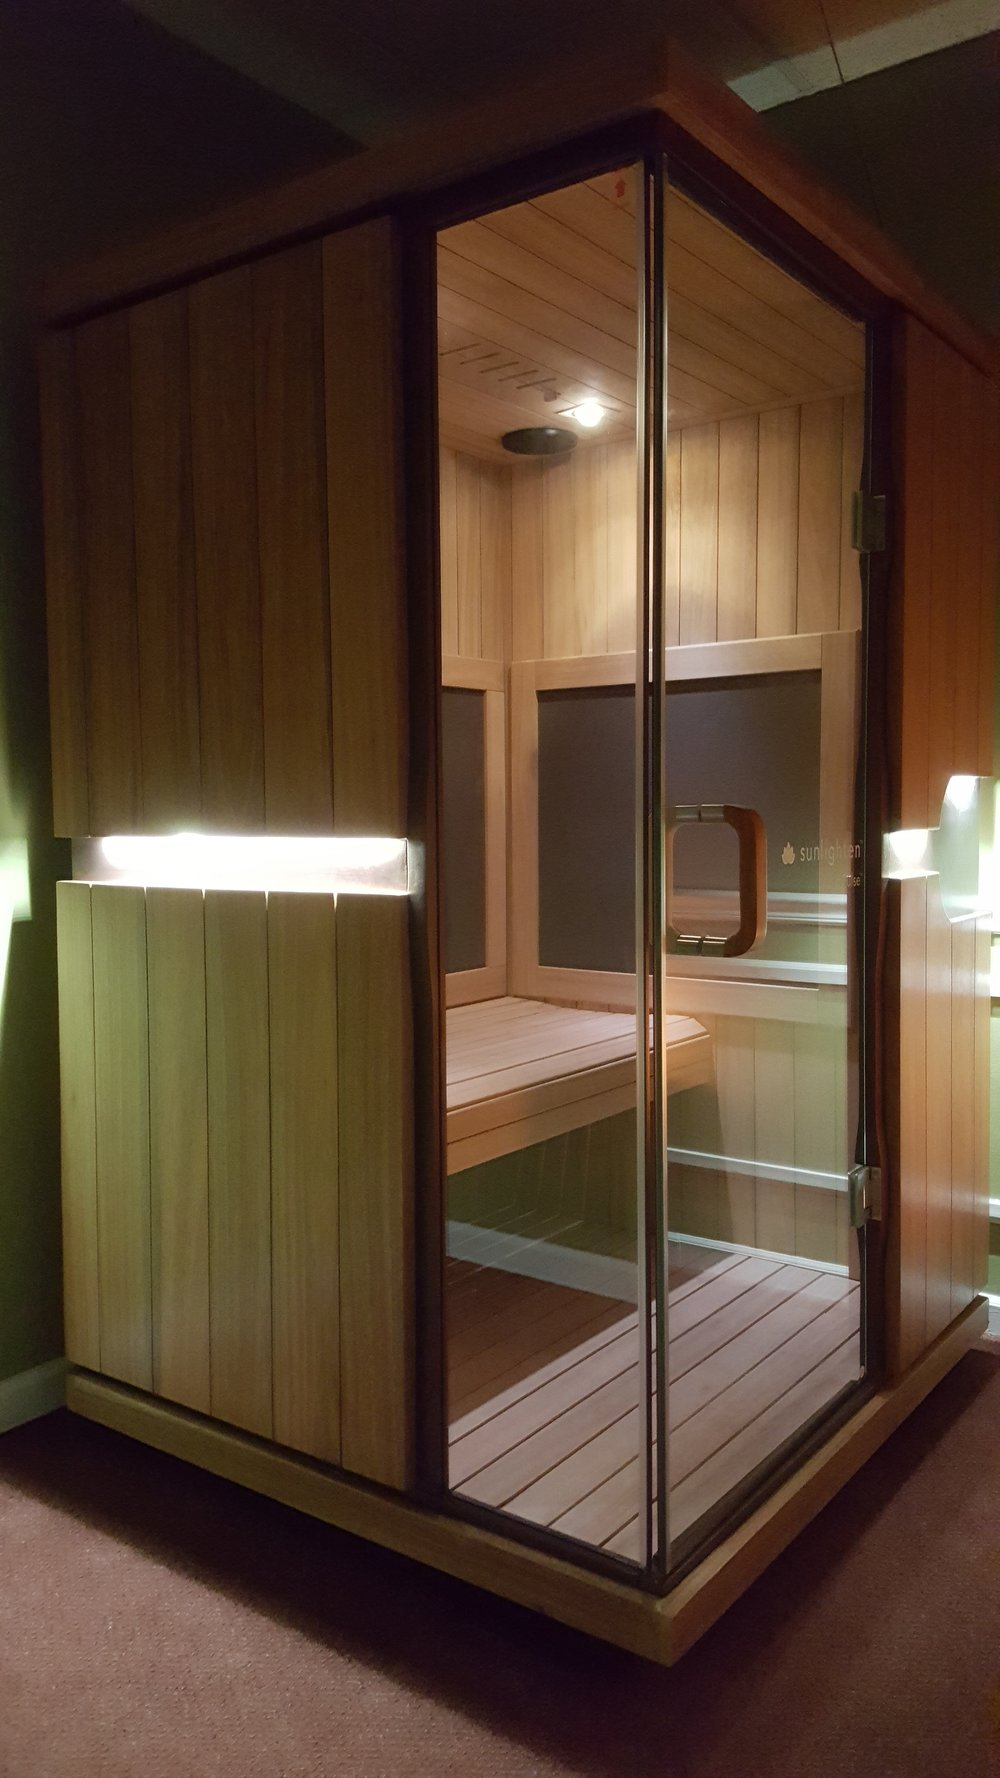 - INFRARED sauna: 30 minute session$25 - per person$115 - 5 pack Sauna Session - per person$199 - 1 month unlimited - per person